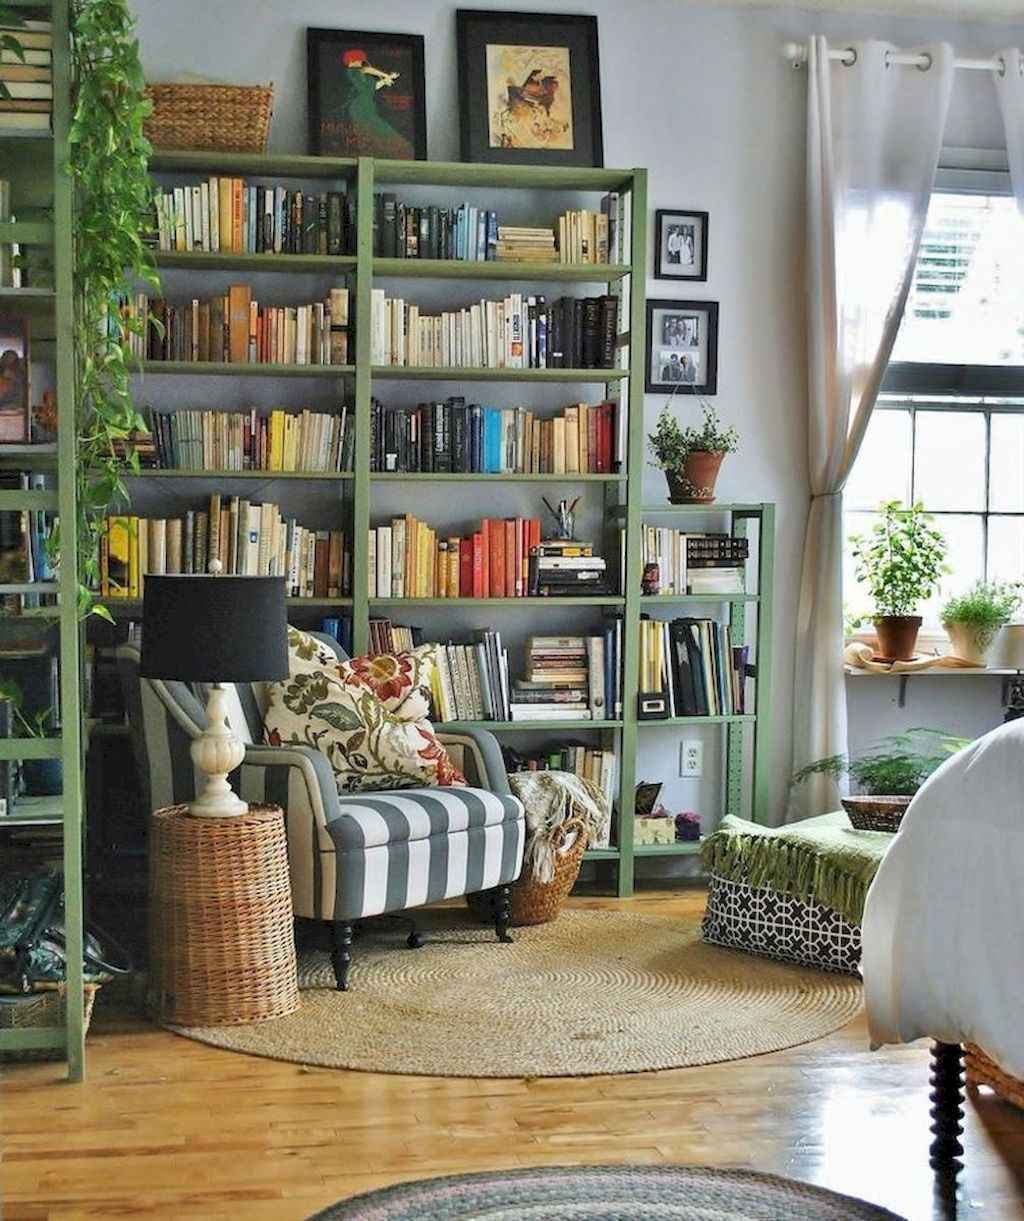 Cozy apartment decorating ideas on a budget (34)